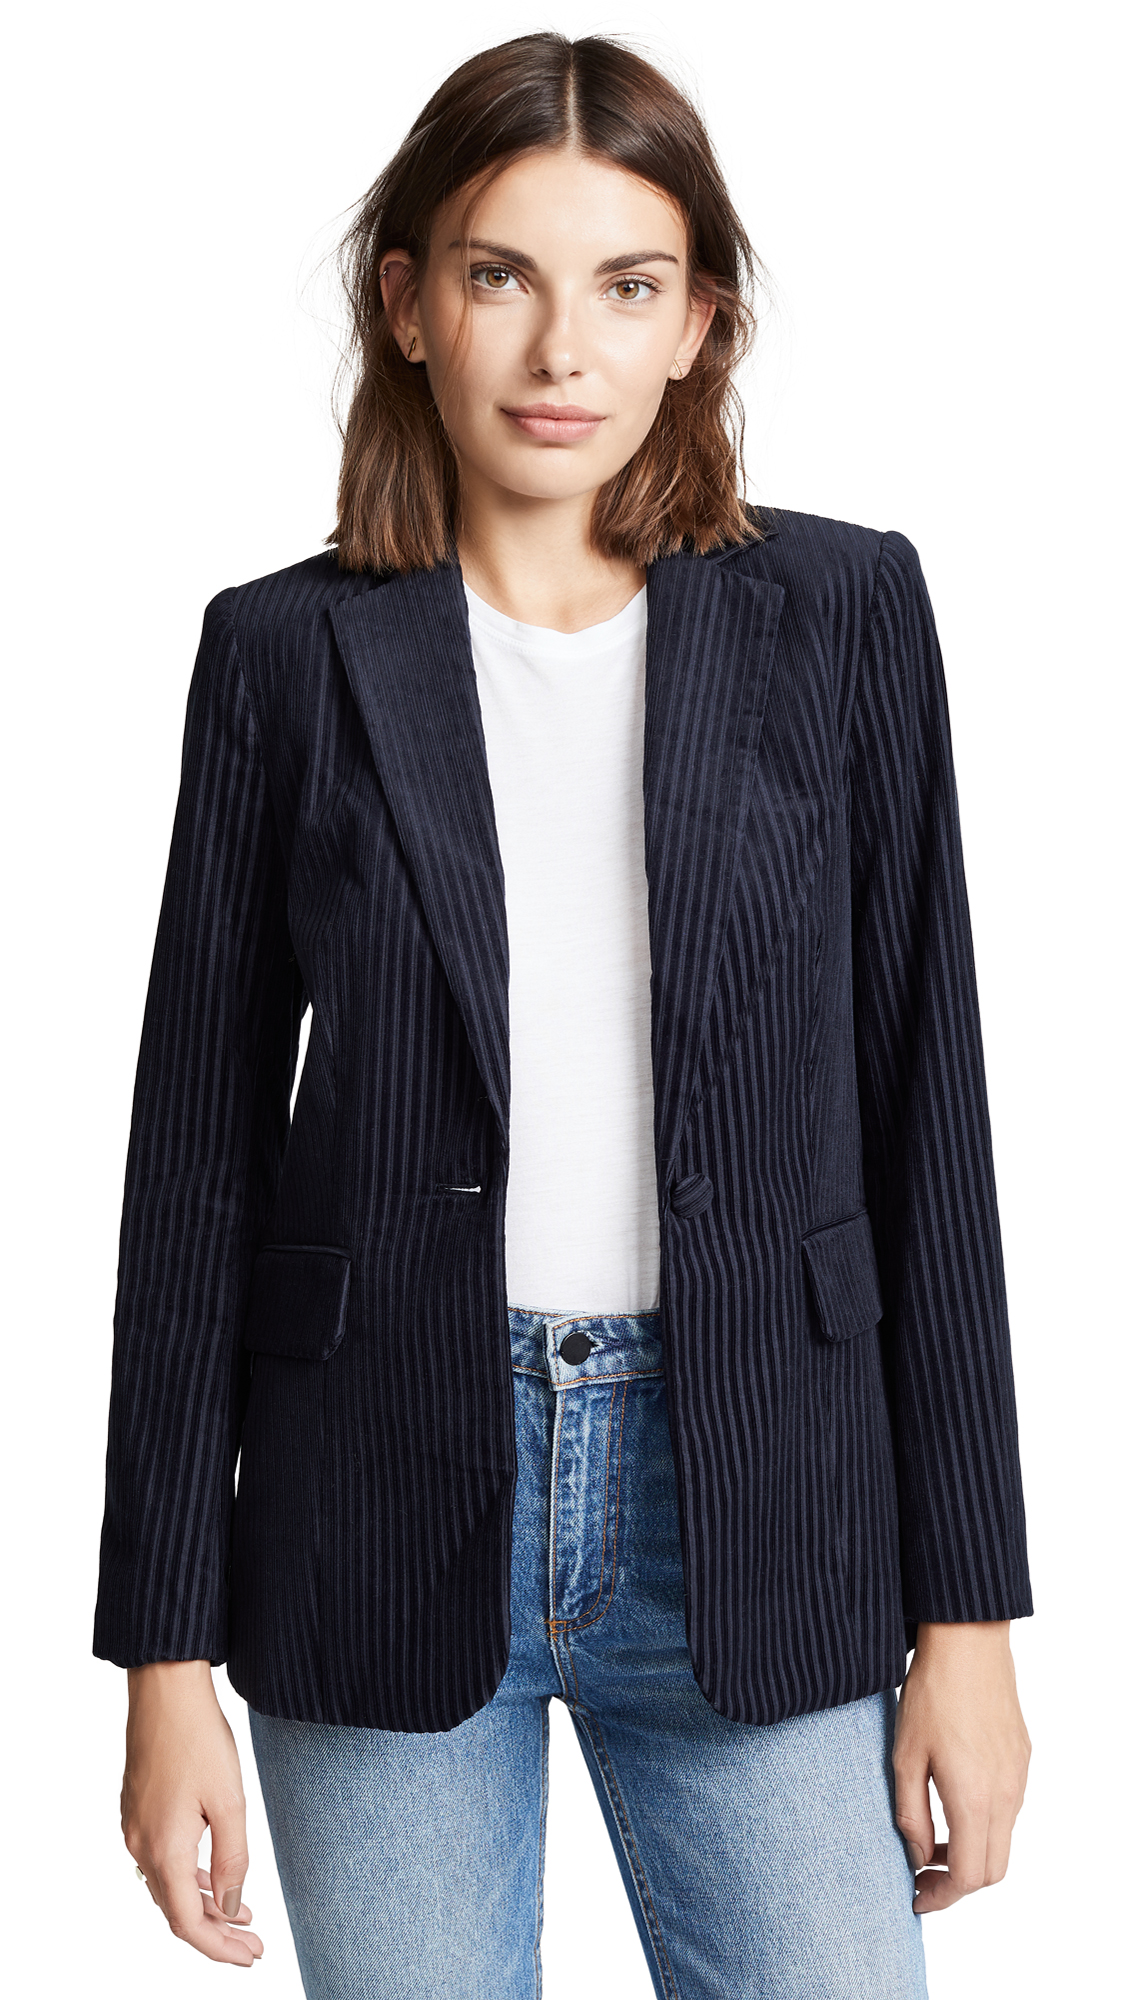 Variegated Ribbed Corduroy Jacket, Fall Navy